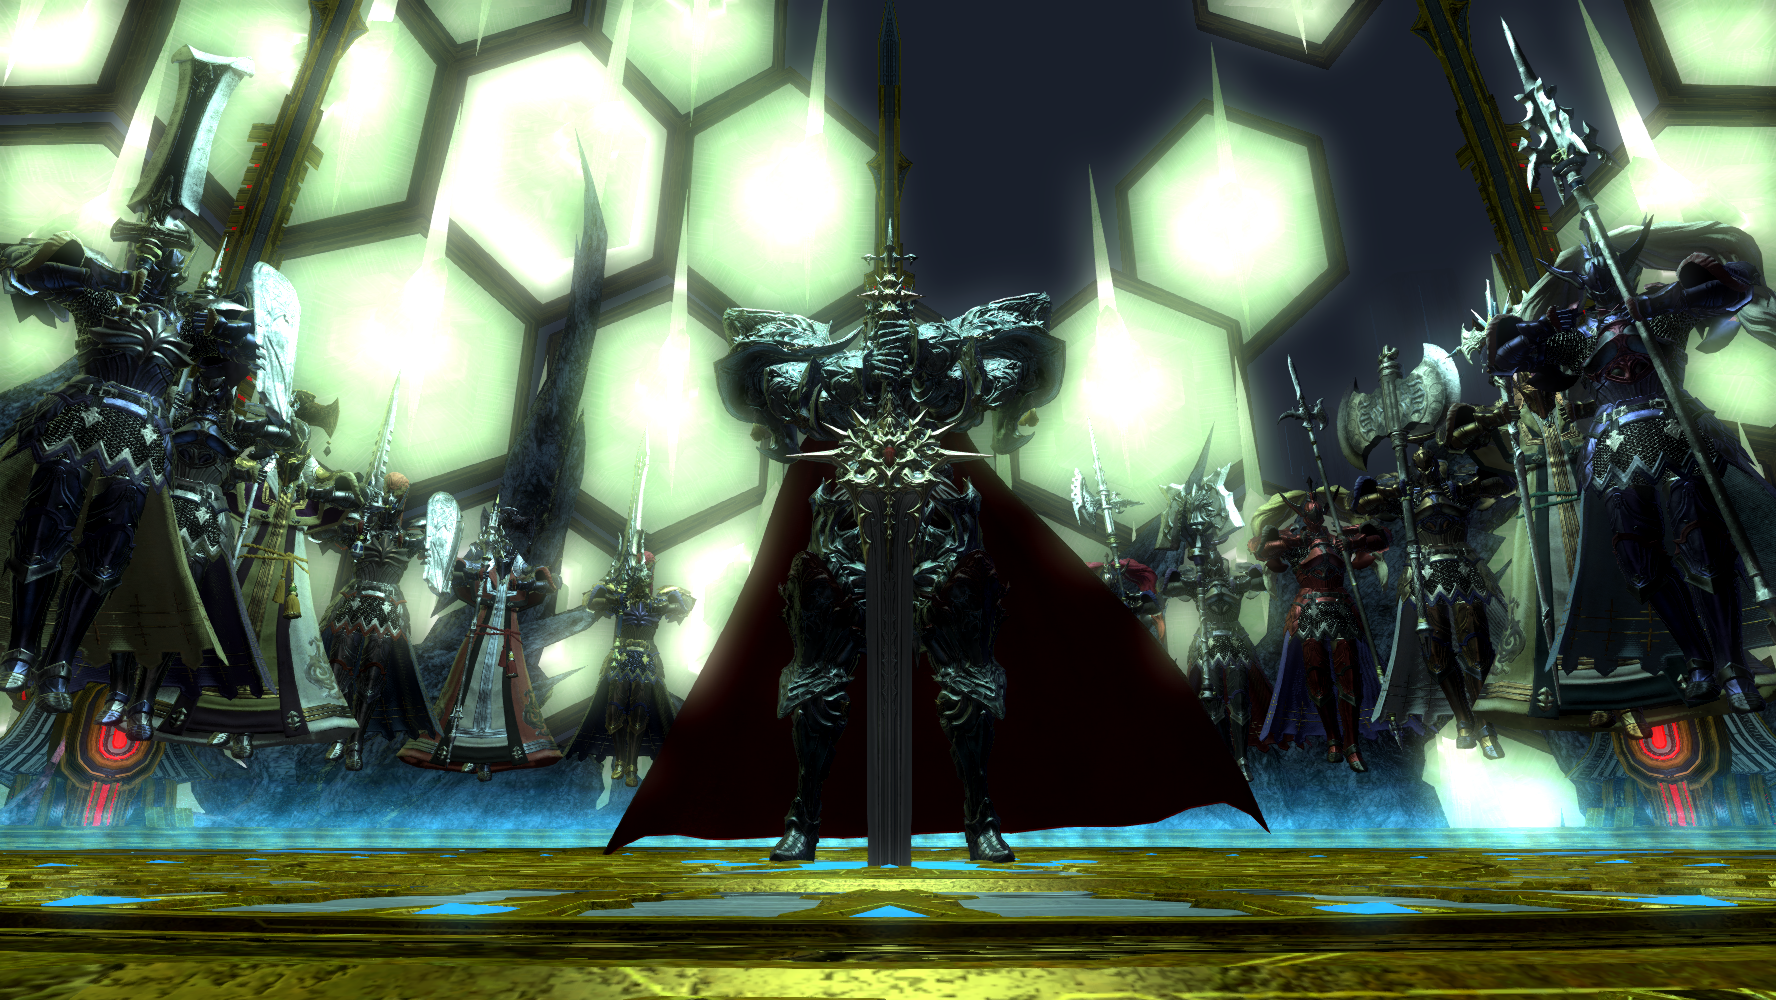 Knights of the Round Summon Ultimate End sequence Final Fantasy XIV